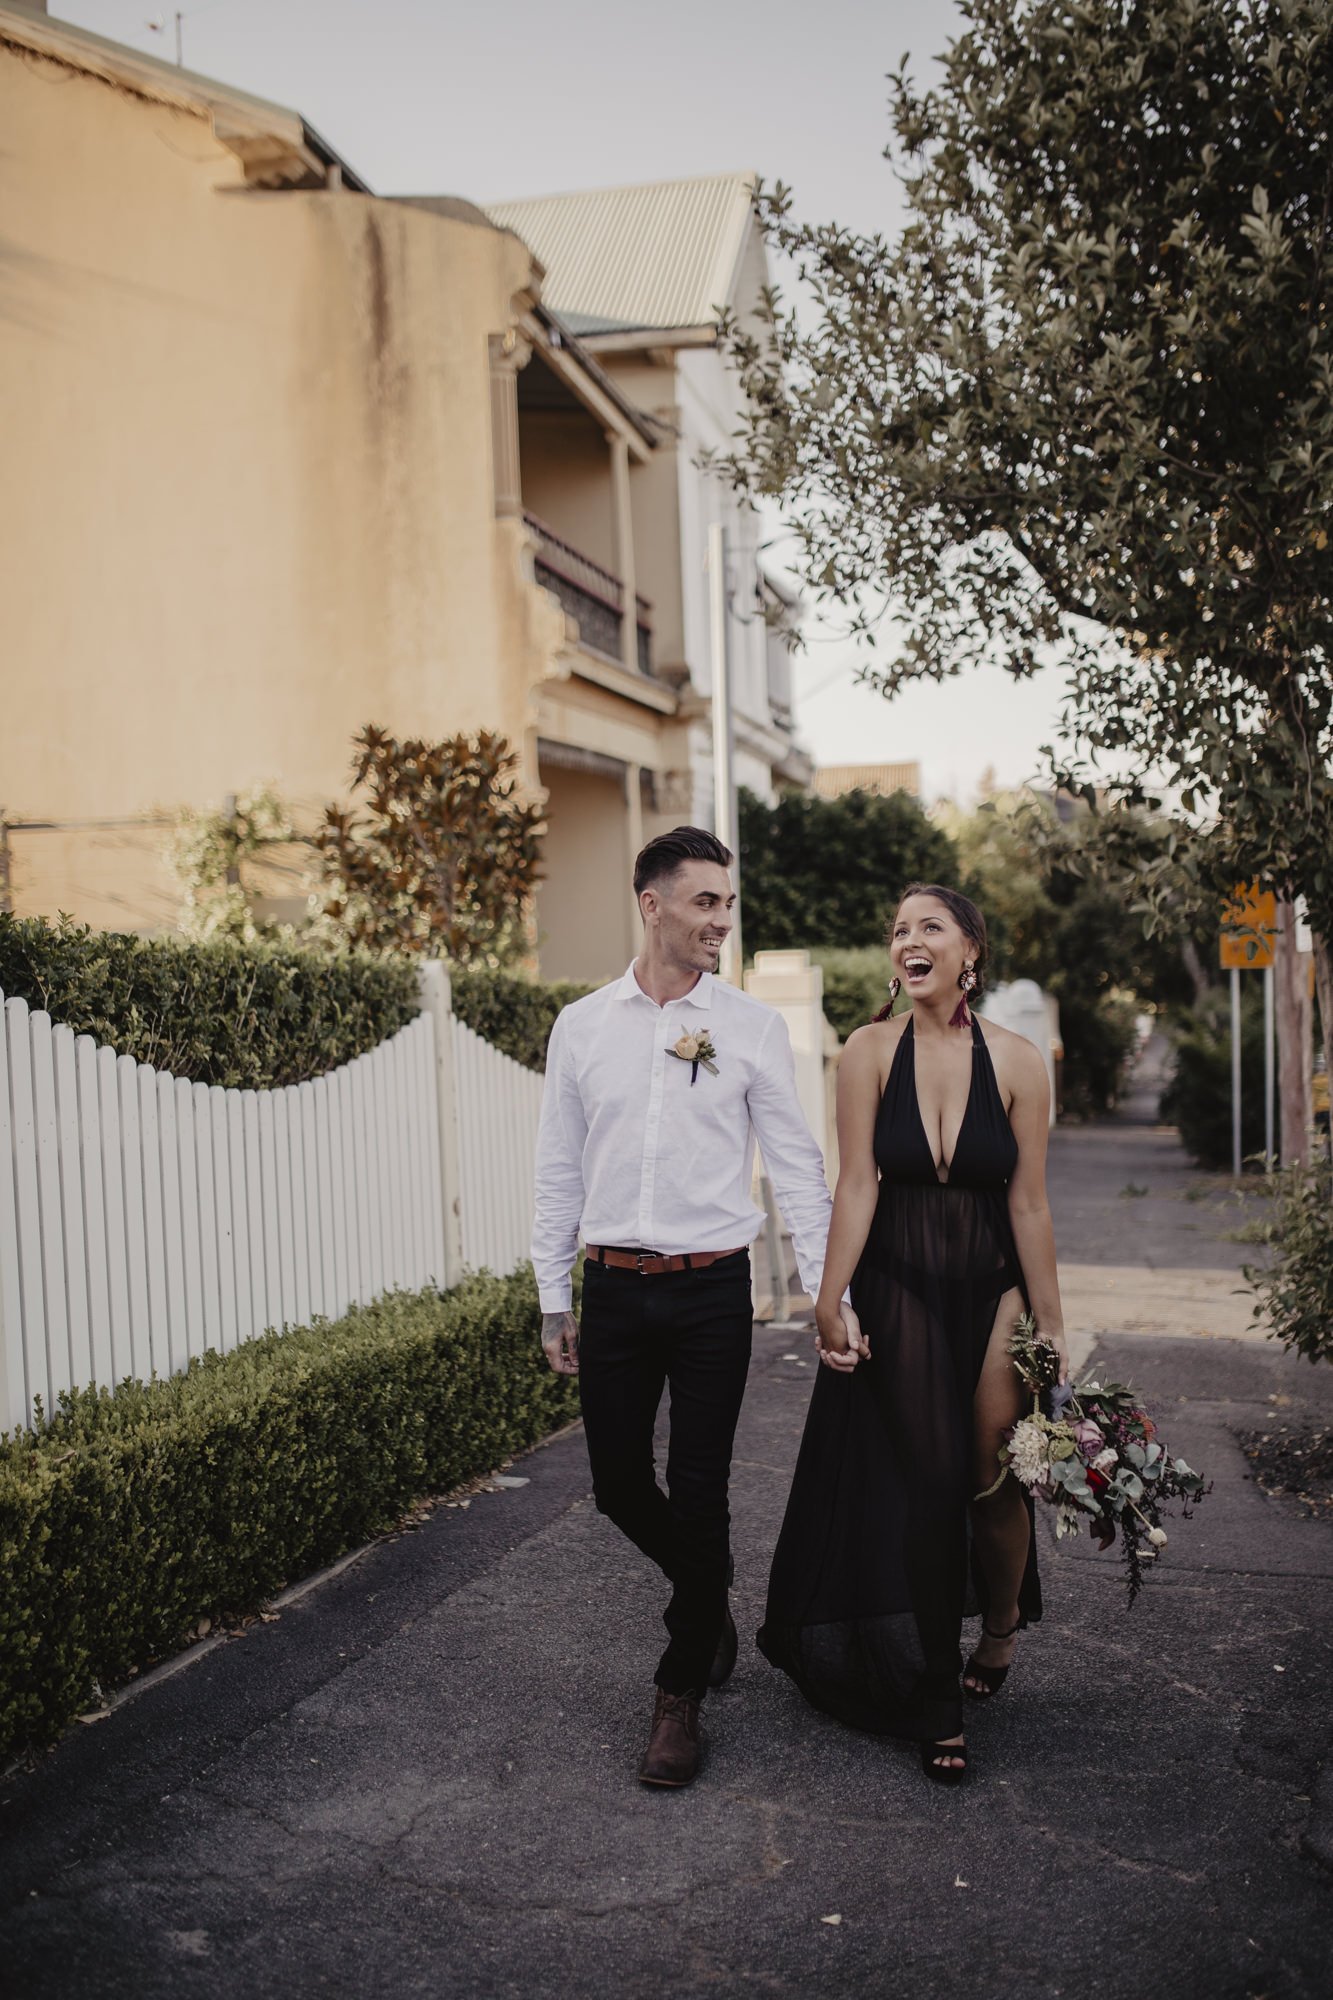 Jacob and Chanelle-3.JPG